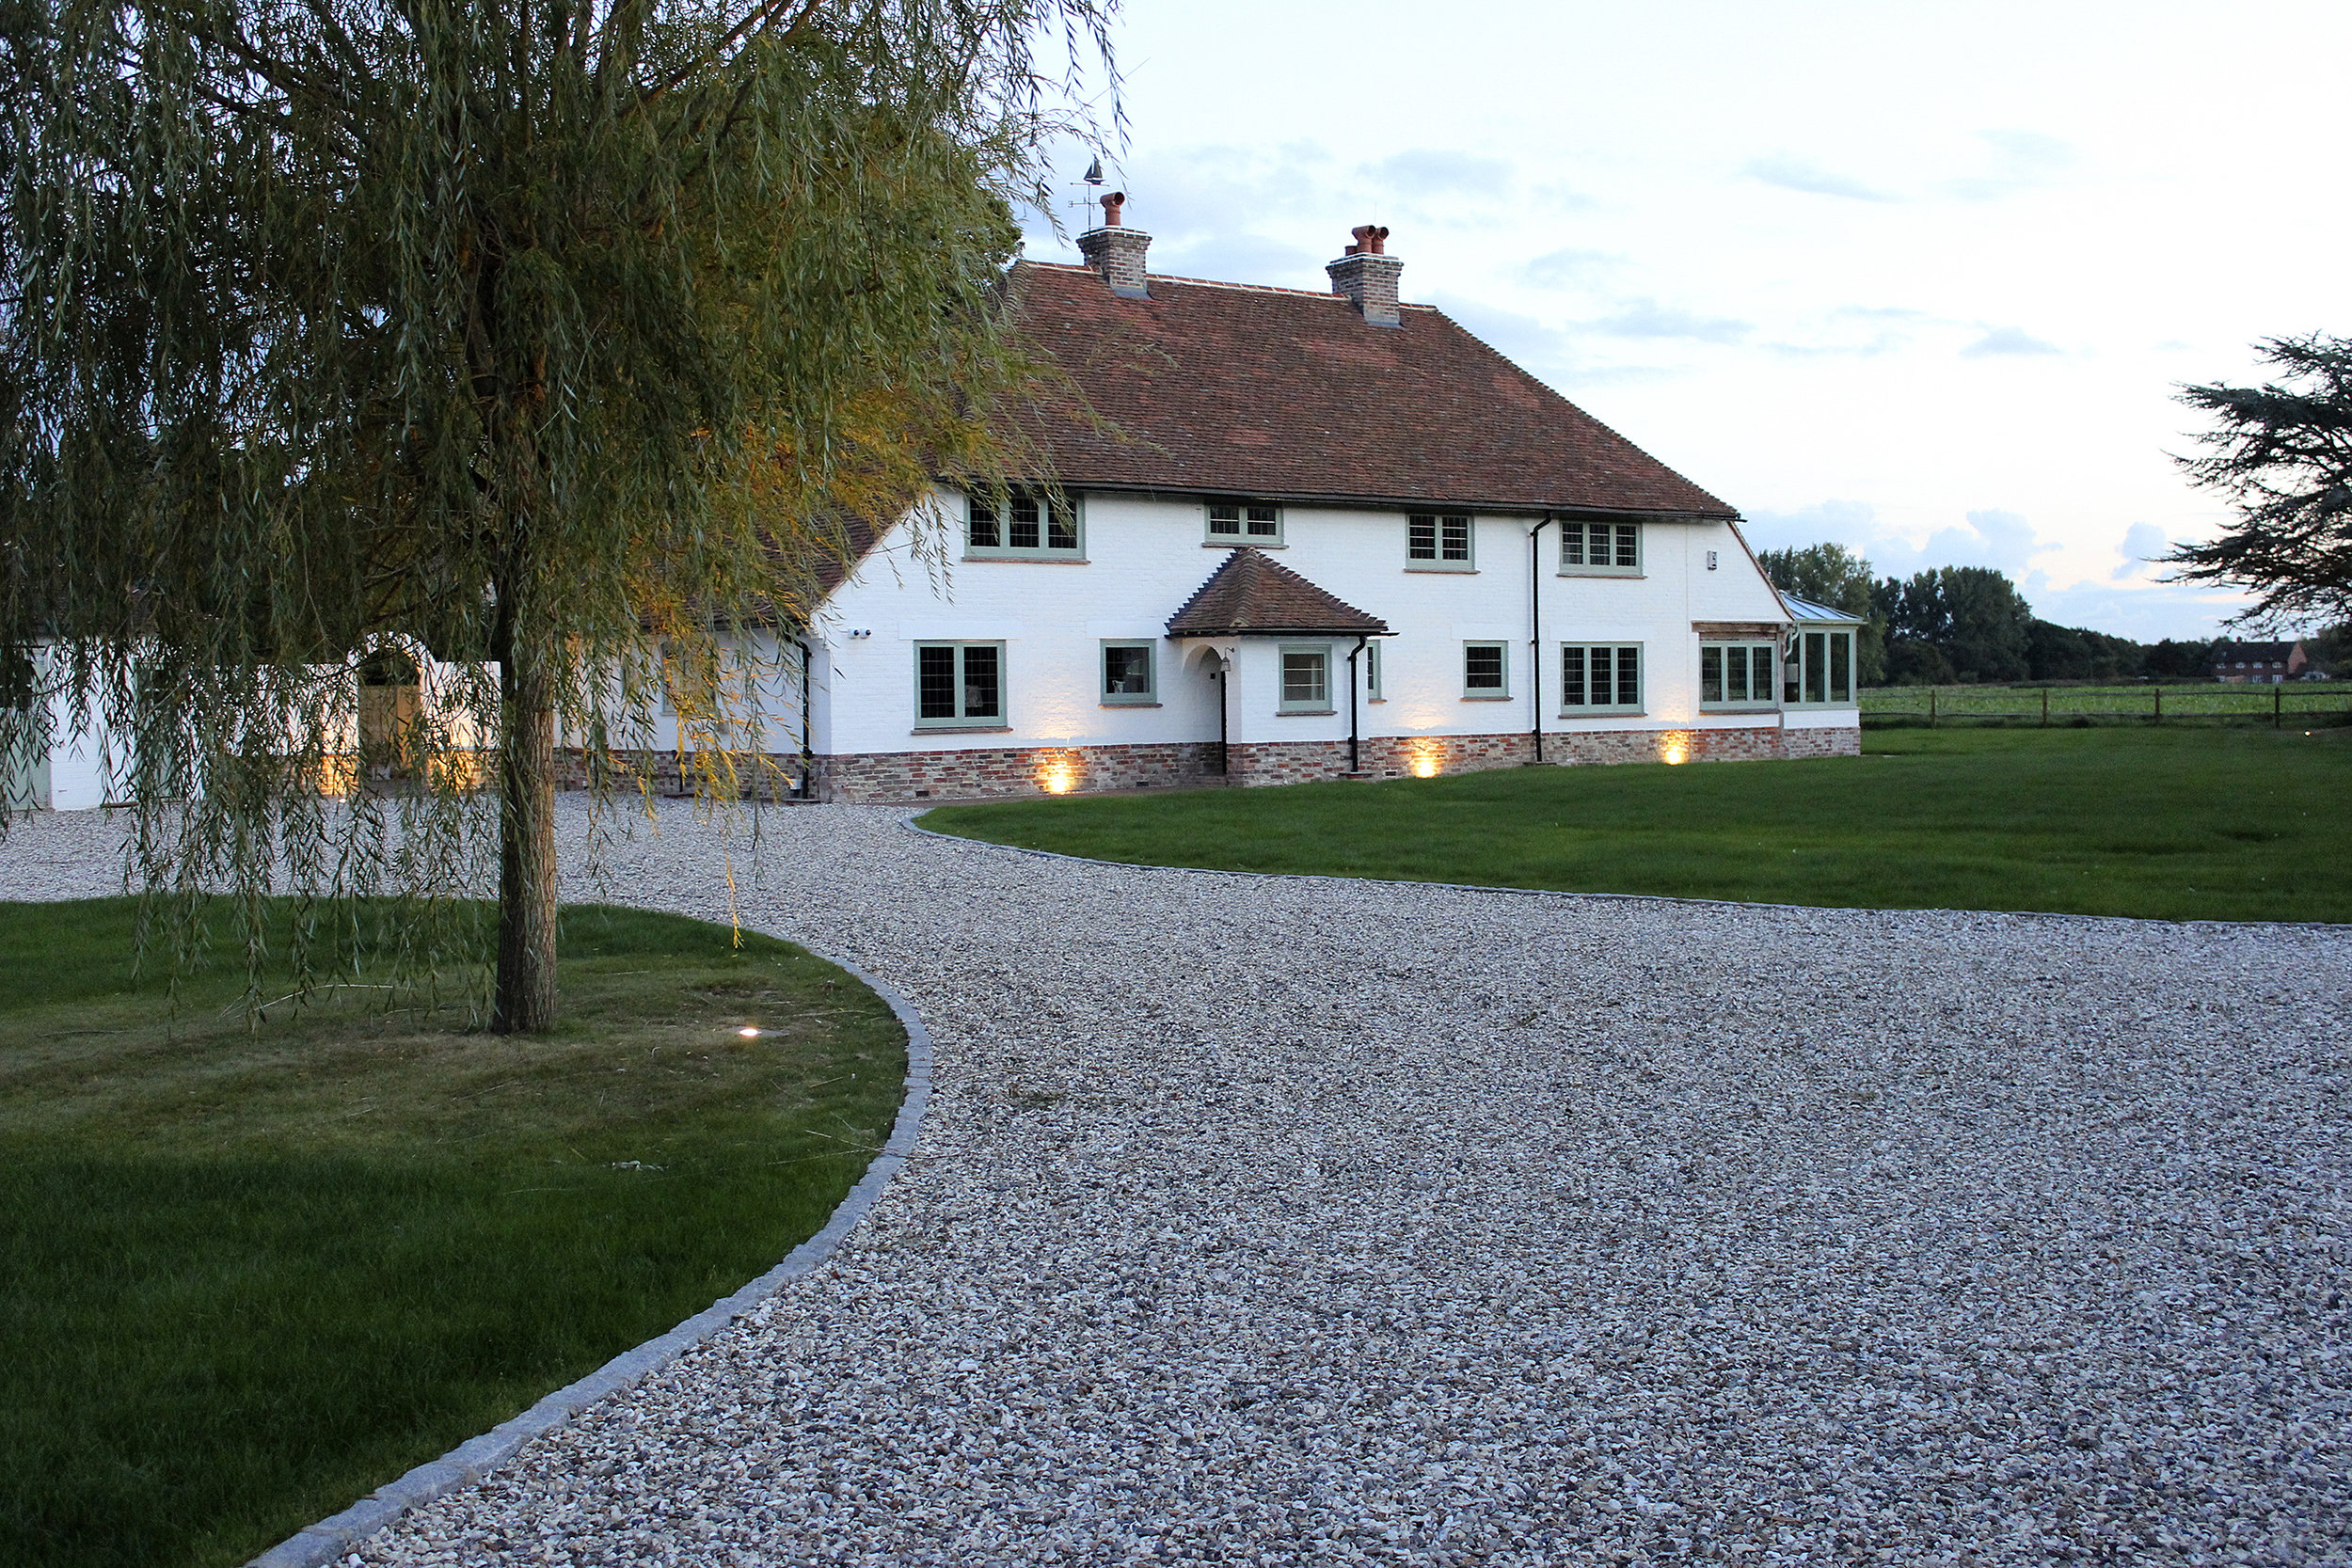 New lawn and reworked driveway adds to the aesthetics of the property.